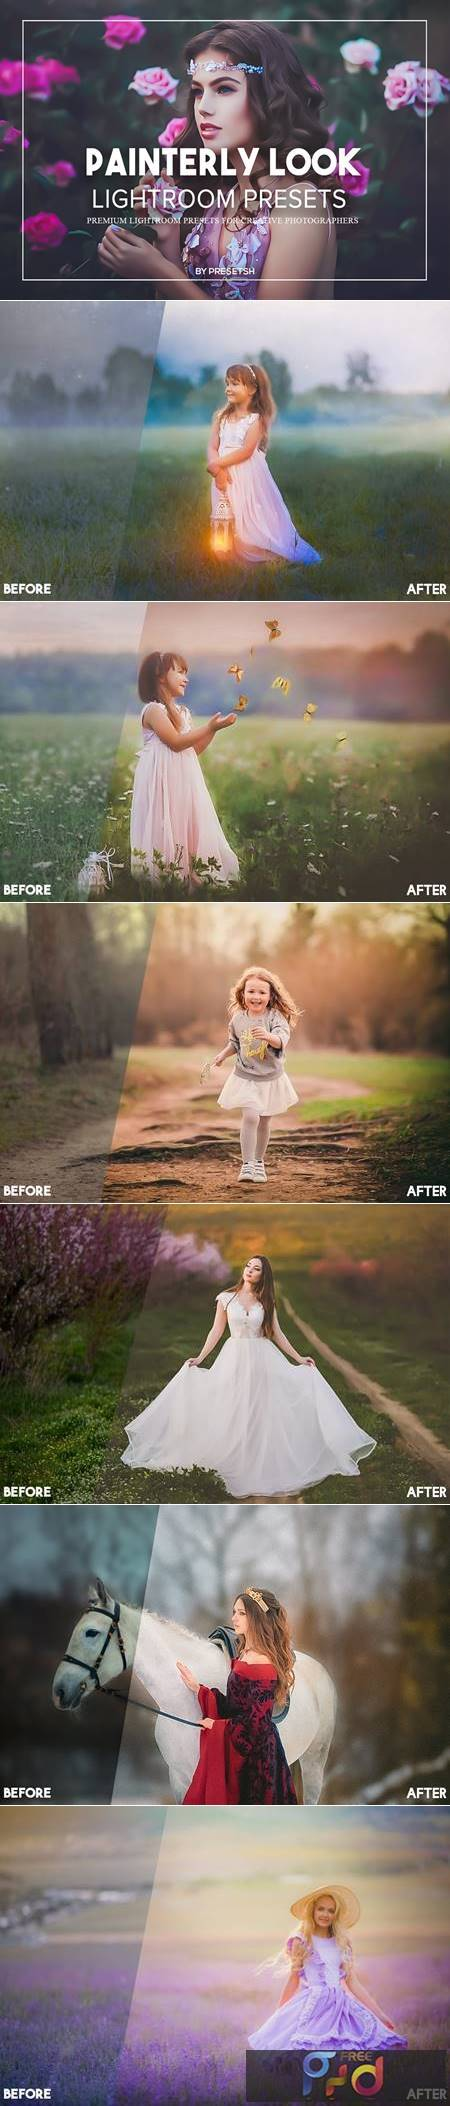 Painterly Lightroom Presets LJFX2R3 1